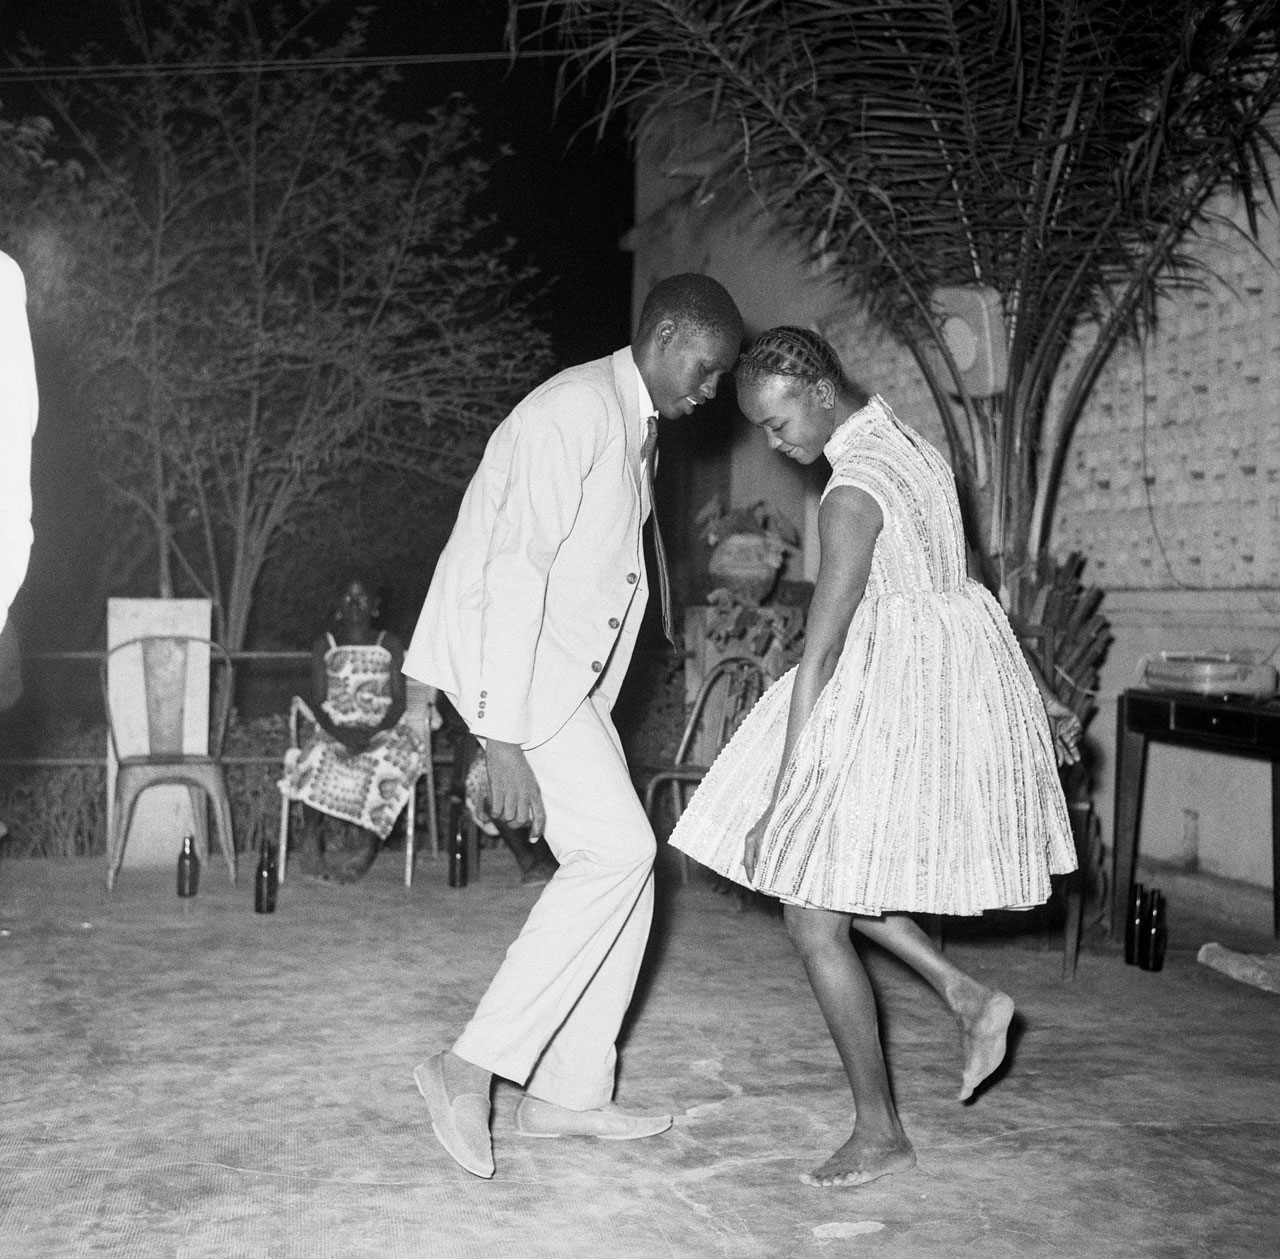 Malick Sidibé, »Nuit de Noël (Happy Club)«, 1963, photograph, © Malick Sidibe, Courtesy CAAC, Courtesy Magnin-A Gallery, Paris.